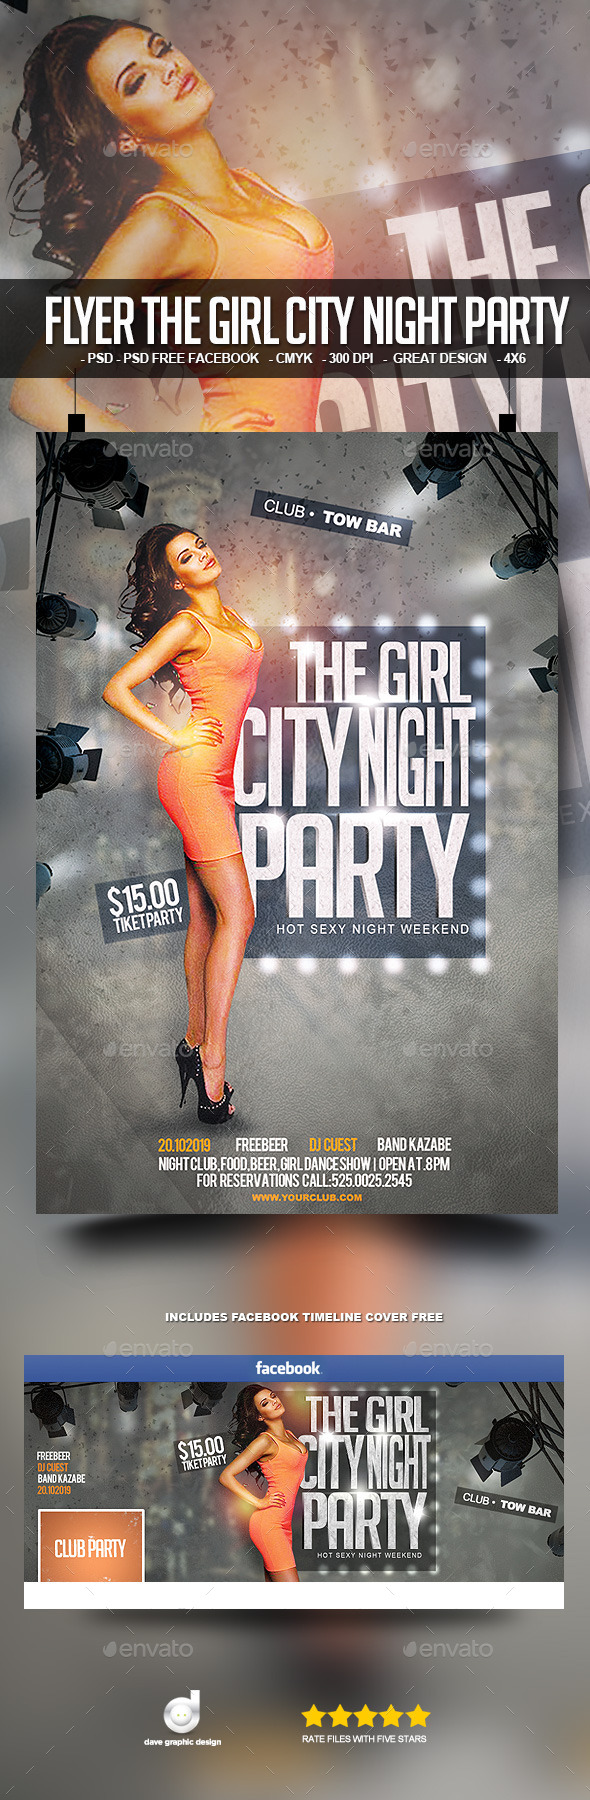 Flyer The Girl City Night Party - Clubs & Parties Events